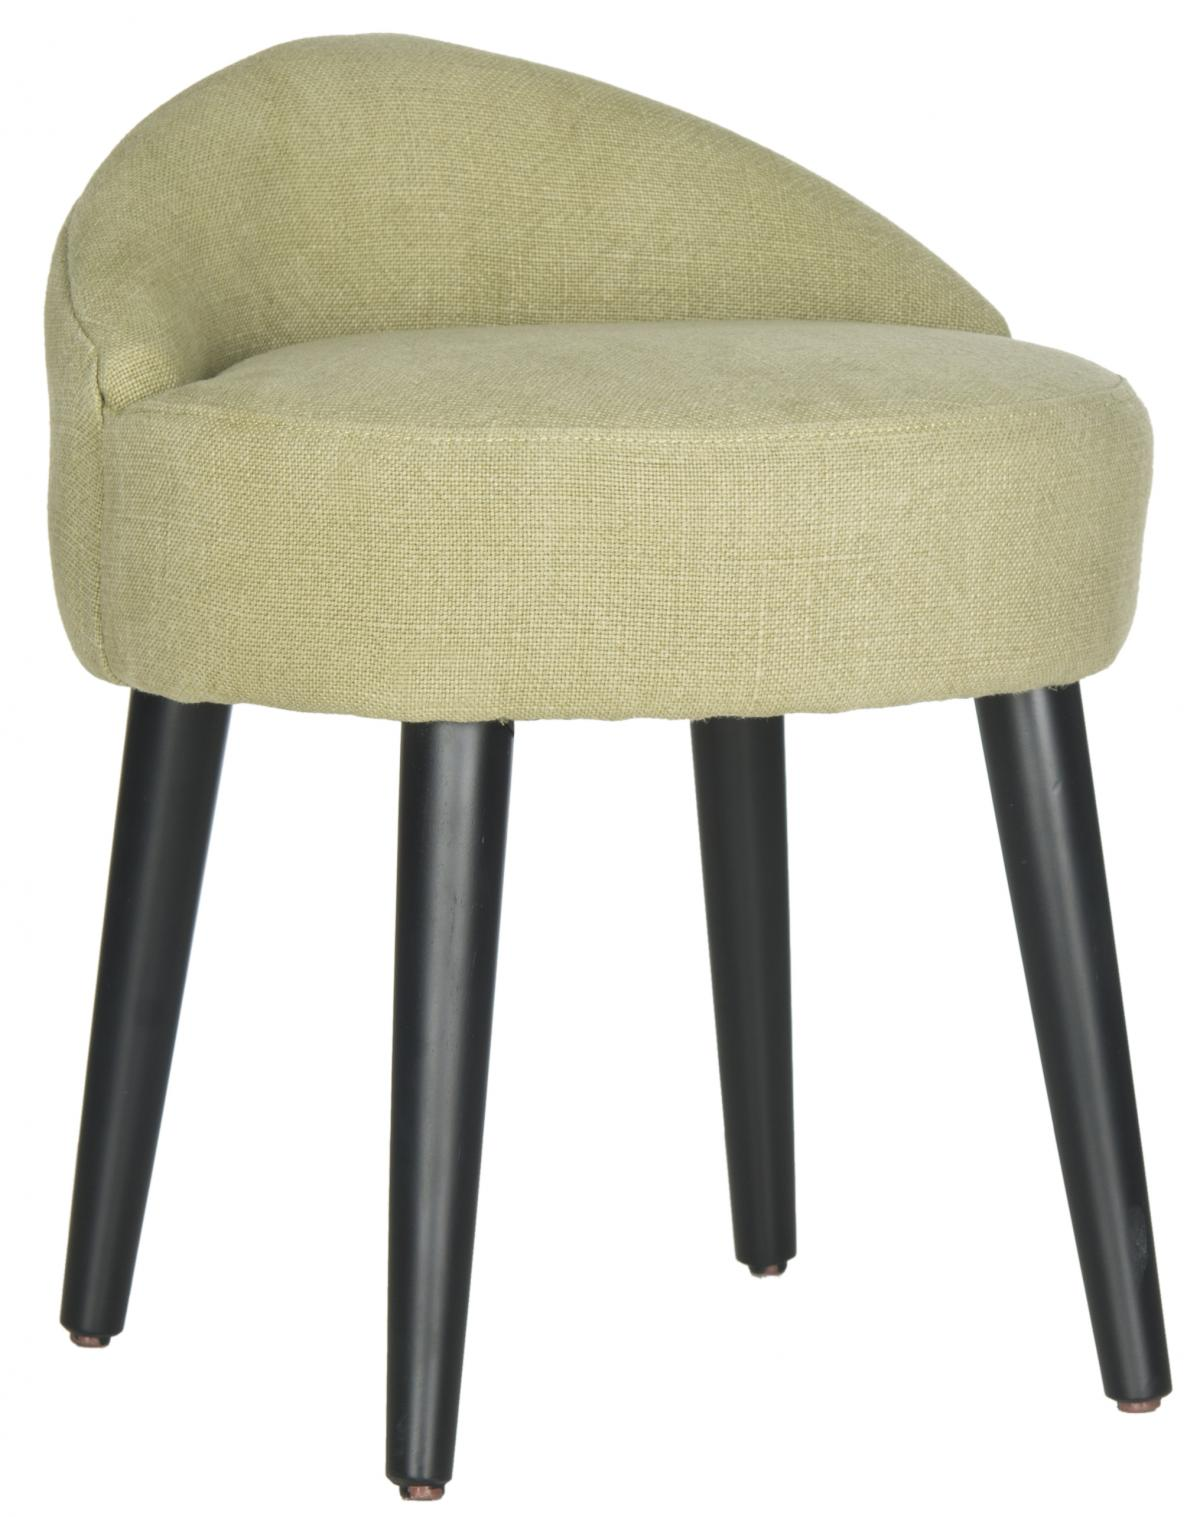 Safavieh - MCR4693B BRINDA VANITY CHAIR - GREEN MIST